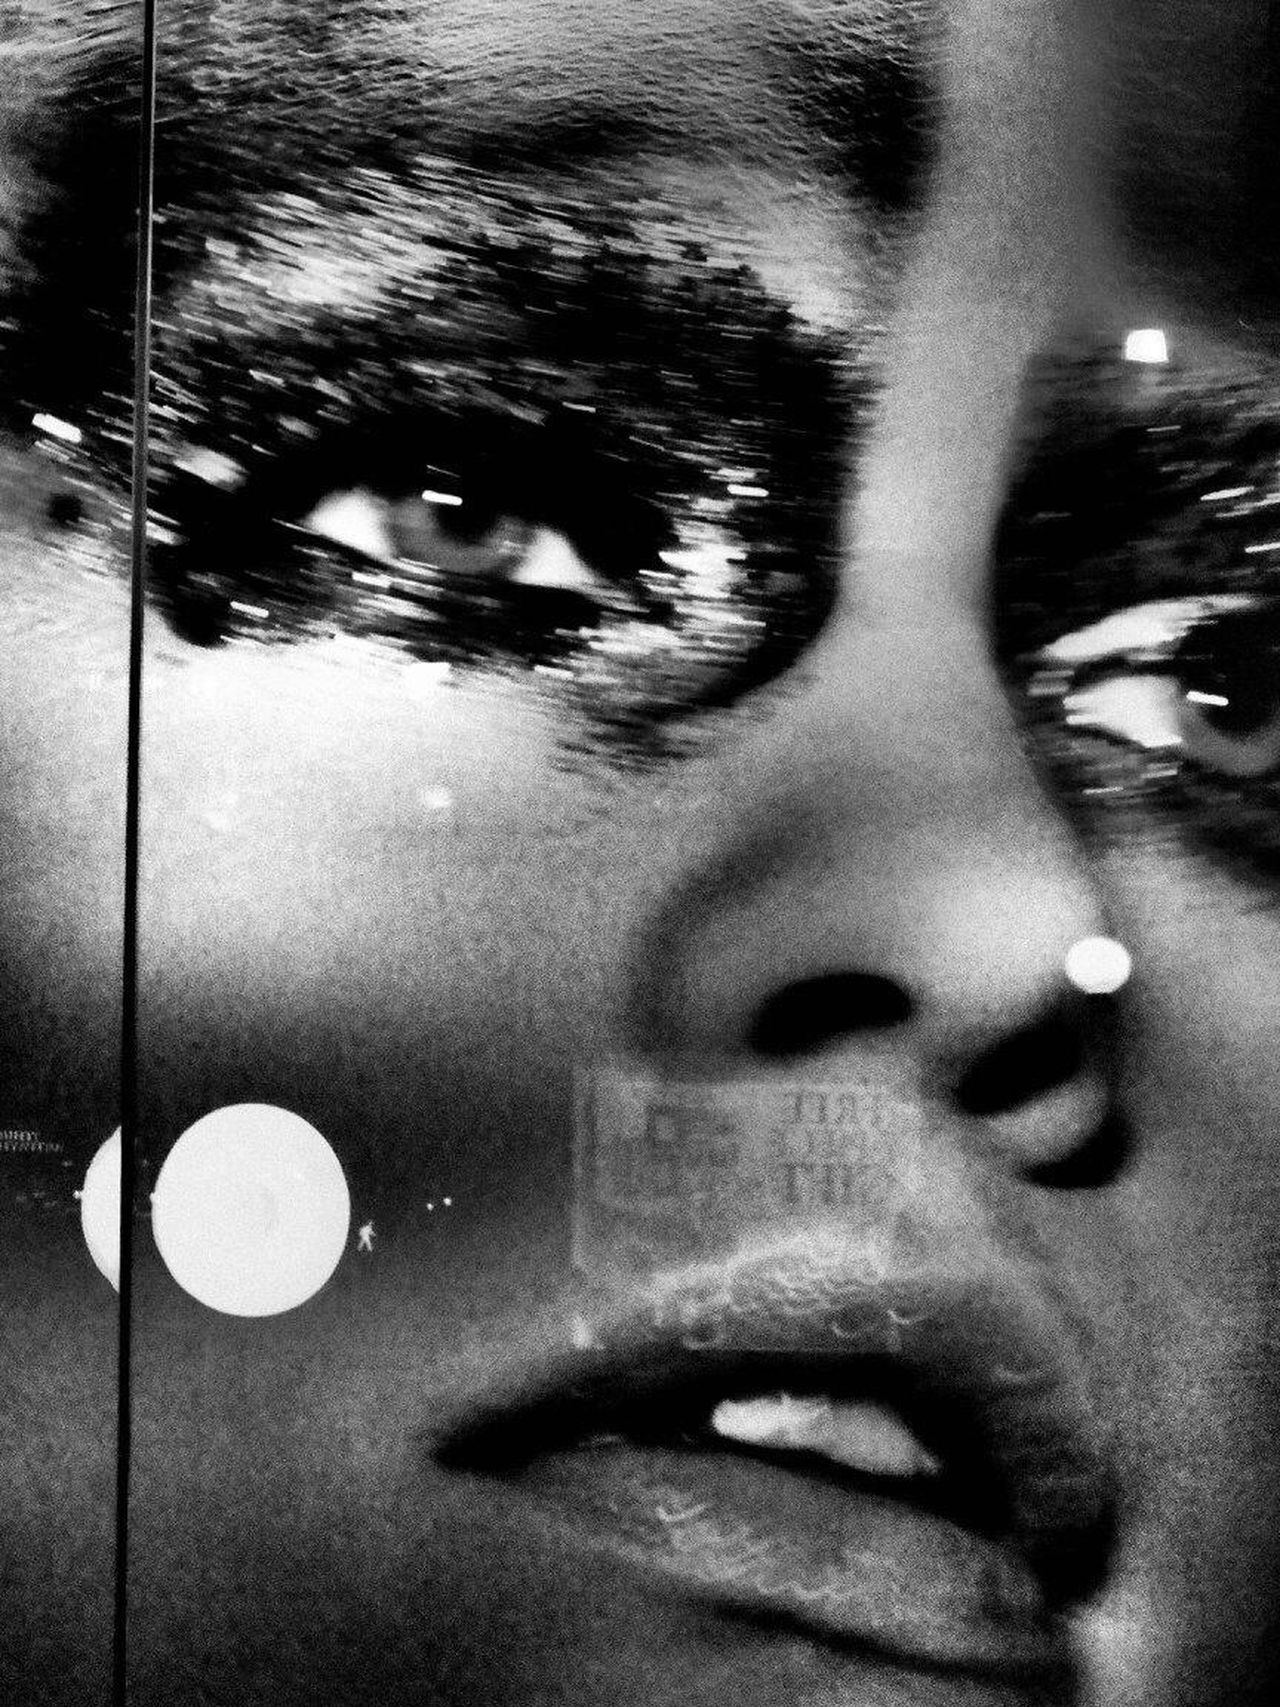 Photographer NYC Makeup Fashion Art And Craft Toronto ArtWork Canada Streetphotography Canon Art, Drawing, Creativity Model Beauty Likeforlike Street Torontophotographer Blackandwhite Black And White Person EyeEm Best Shots For Sale Focus On Foreground Human Face Creativity